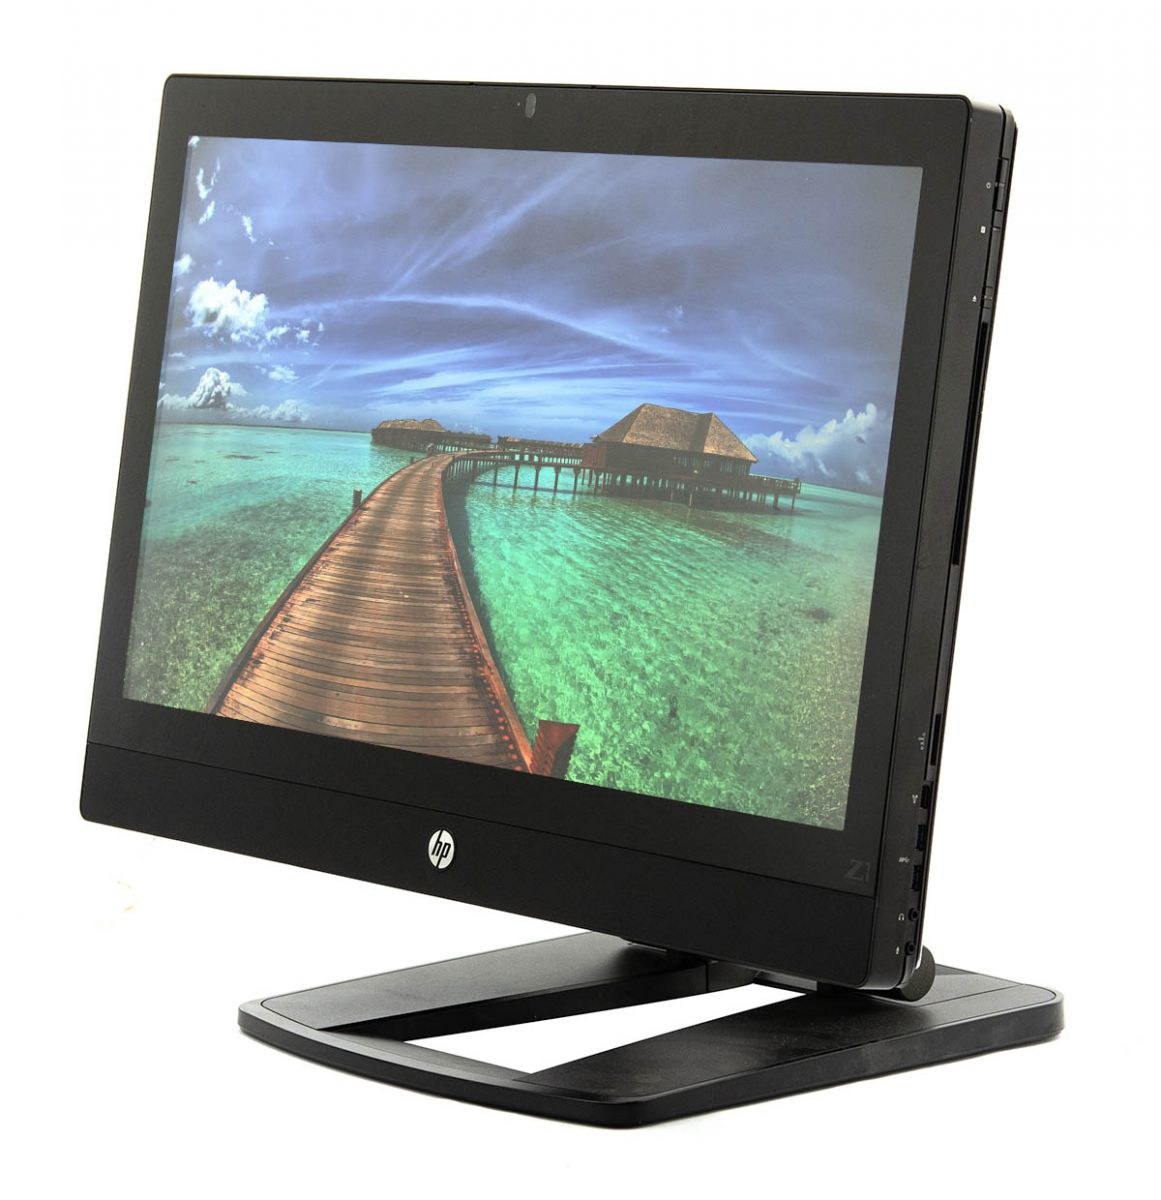 HP Z1 Workstation Computer Versatile View